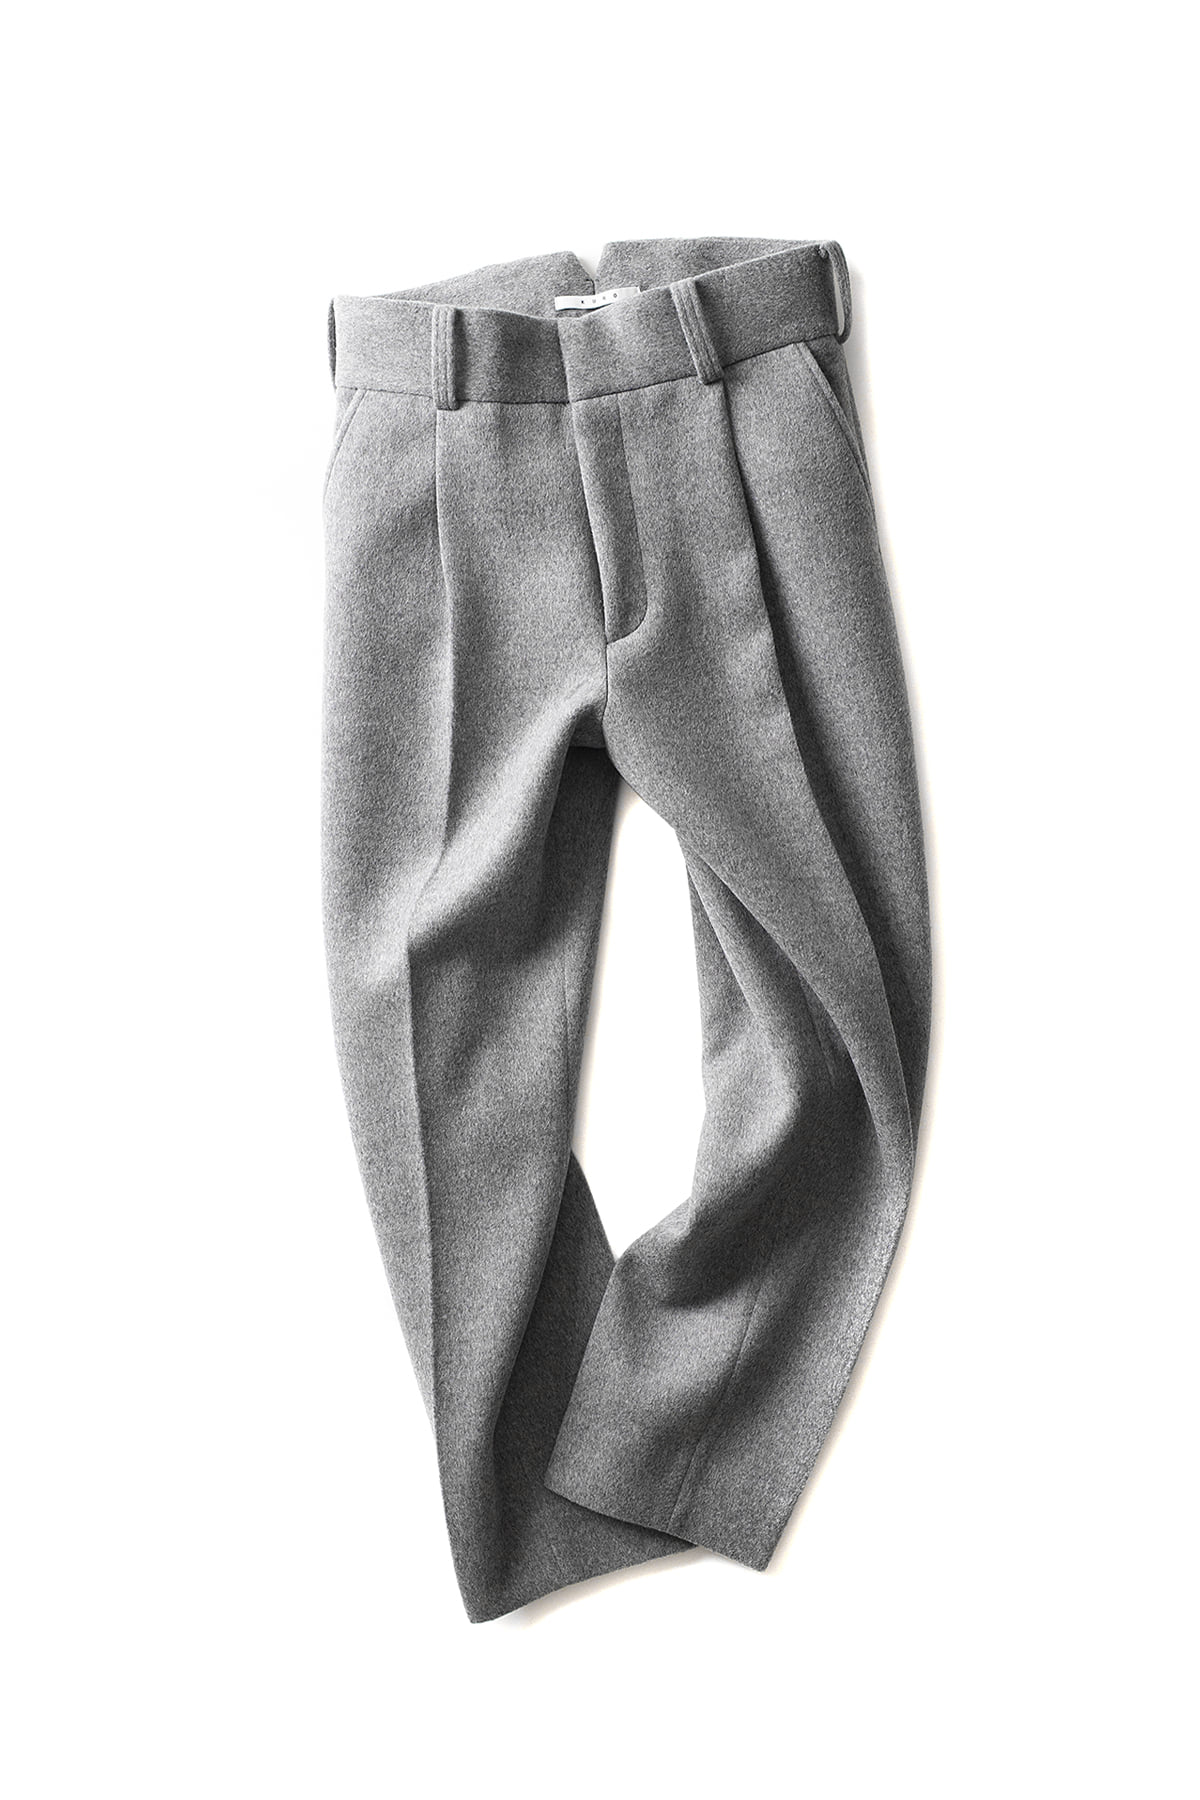 KURO : One Tuck Tapered Trouser (Grey)